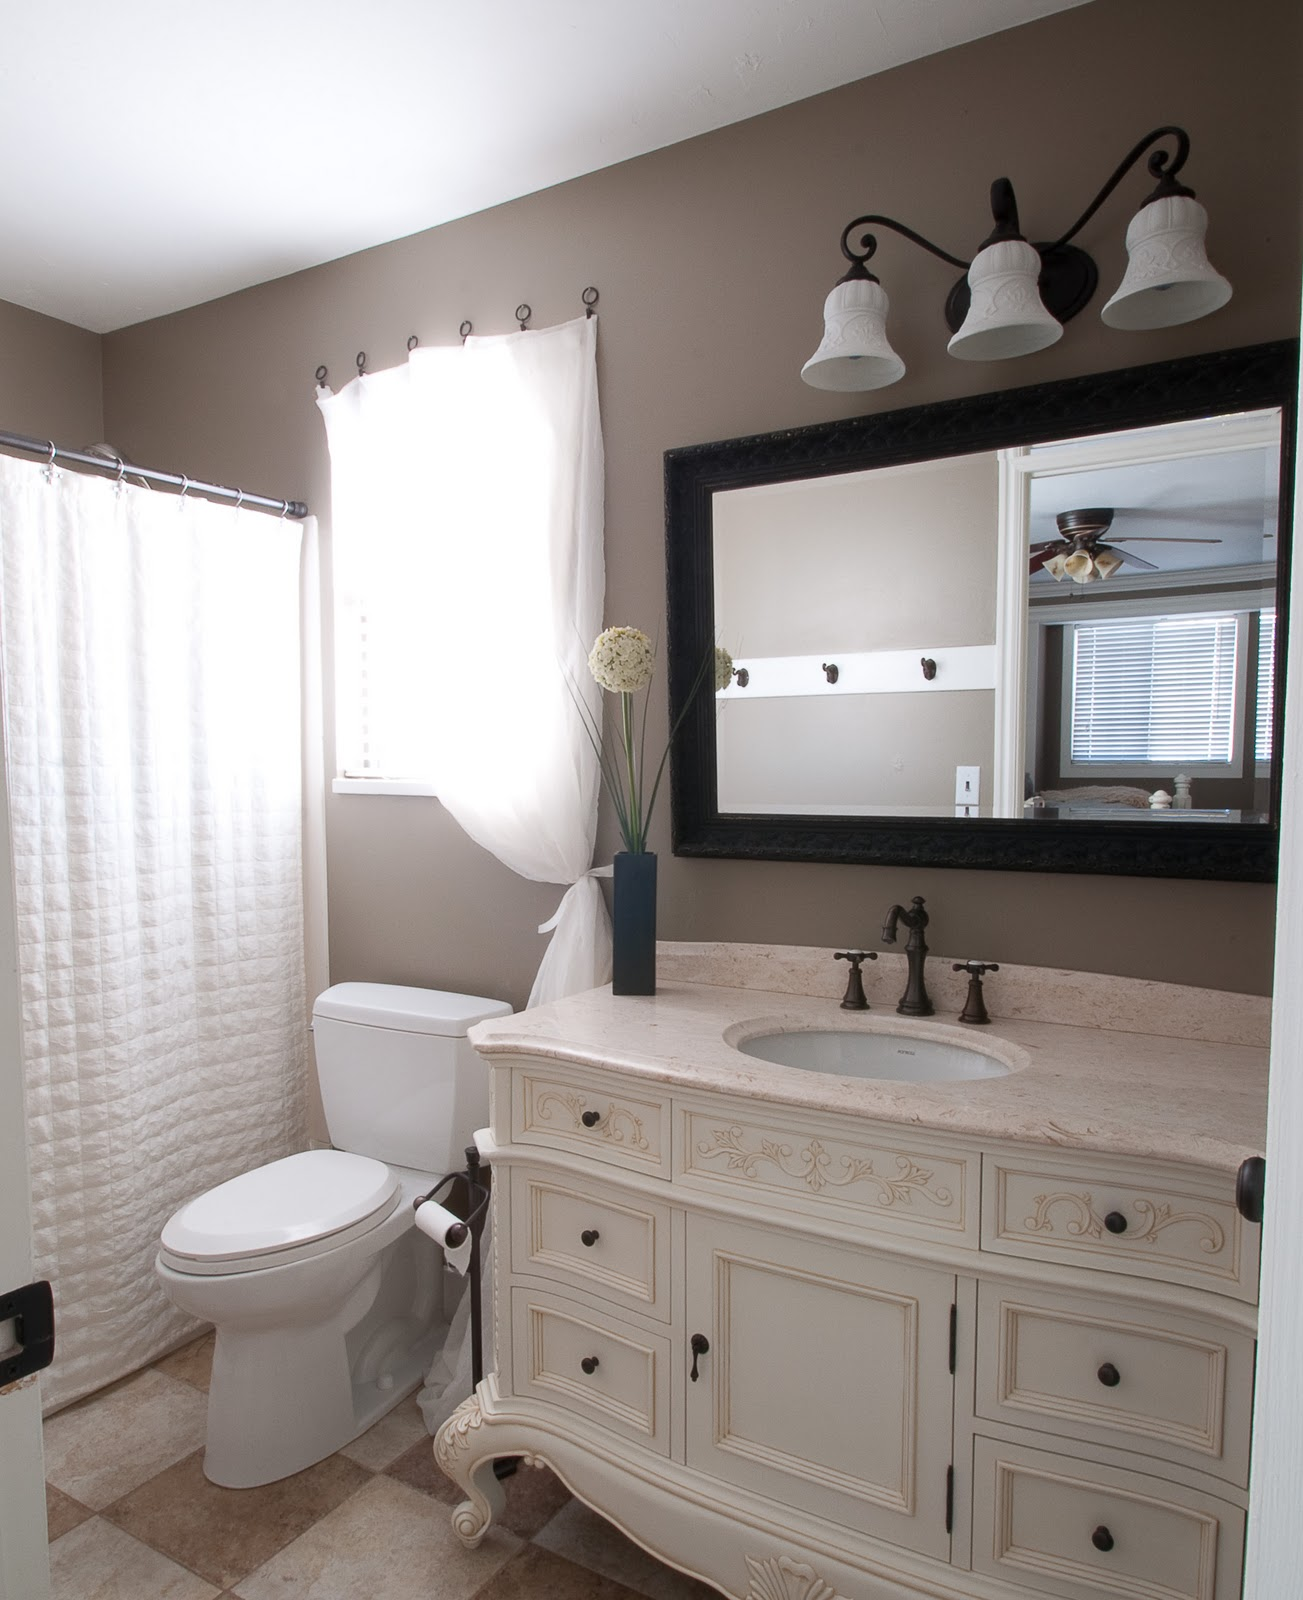 Bathroom Ideas: Start At Home: Bathroom REDO